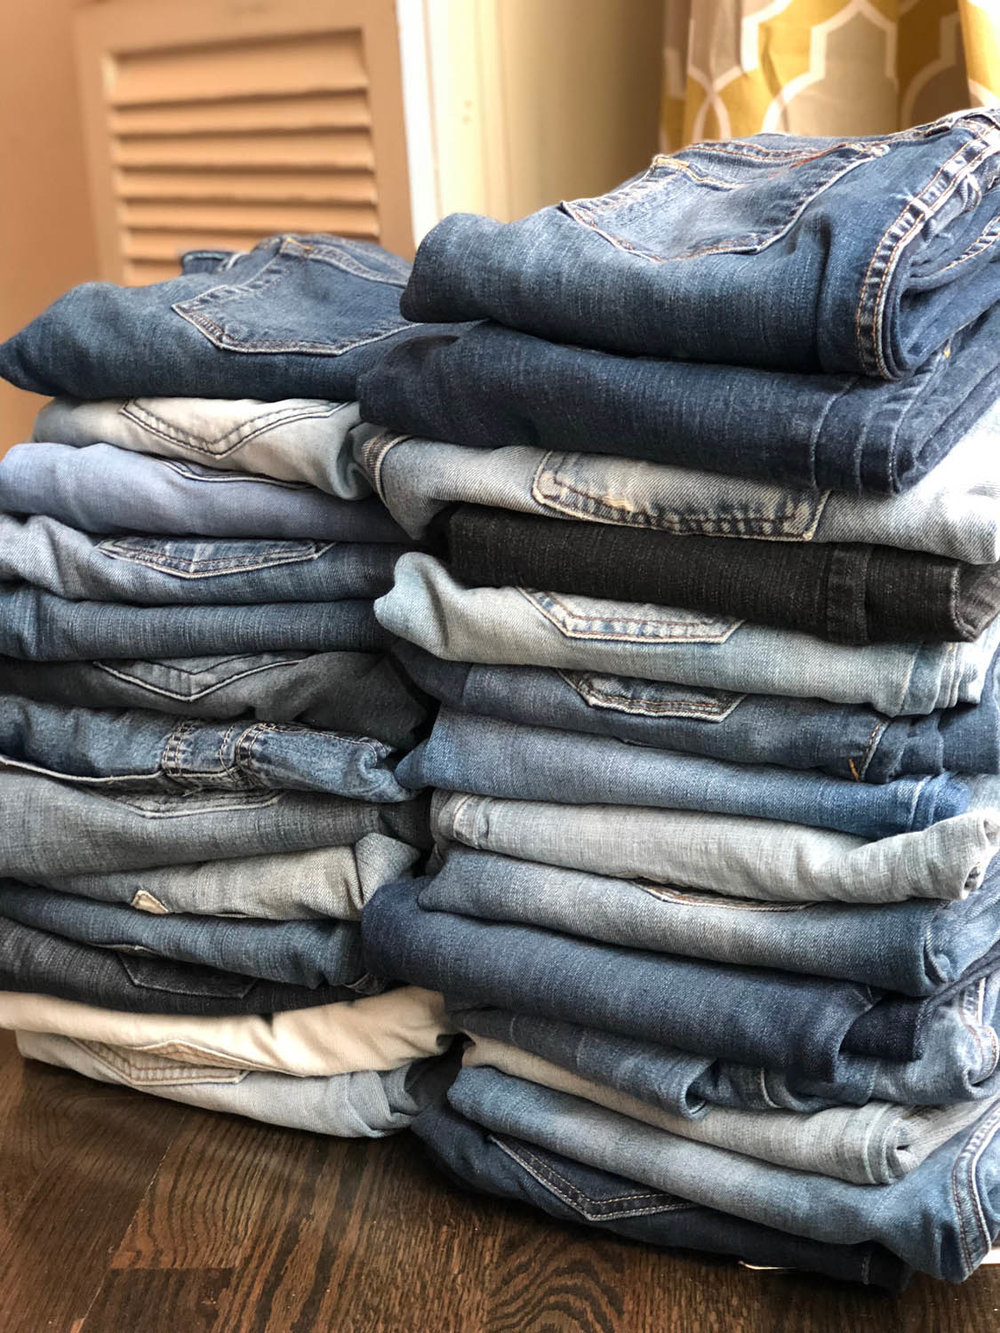 pile of folded denim blue jeans